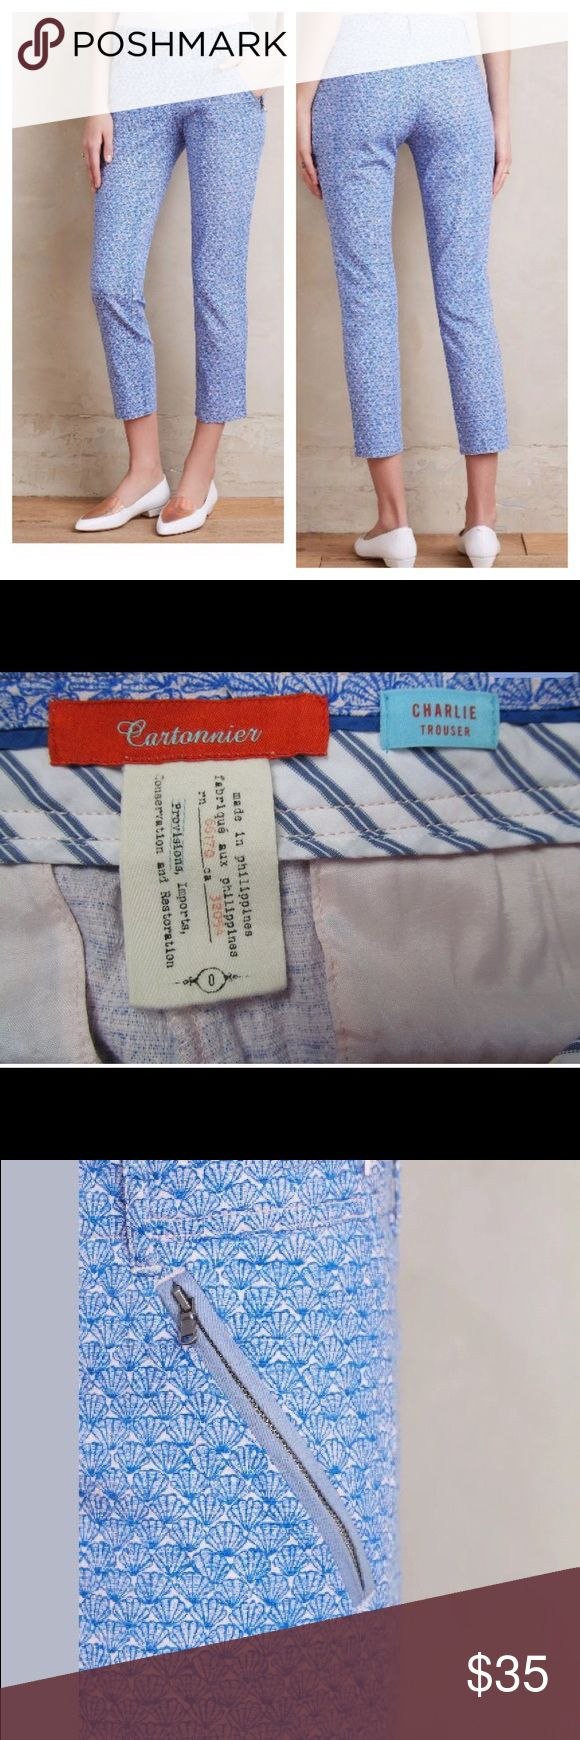 """{Anthropologie} cartonnier trousers EUC Cartonnier Oceanfront Charlie Trouser. Size 0. 98% cotton, 2% spandex. Side zip/button closure. Two front zip pockets. Seashell pattern. 24 3/4"""" inseam, 14.5"""" pulled lightly across waist, 8 1/4"""" rise. No flaws and great condition.    Cotton, spandex Slim, tailored fit Side slant, back welt pockets Side zip Machine wash Imported Anthropologie Pants Ankle & Cropped"""